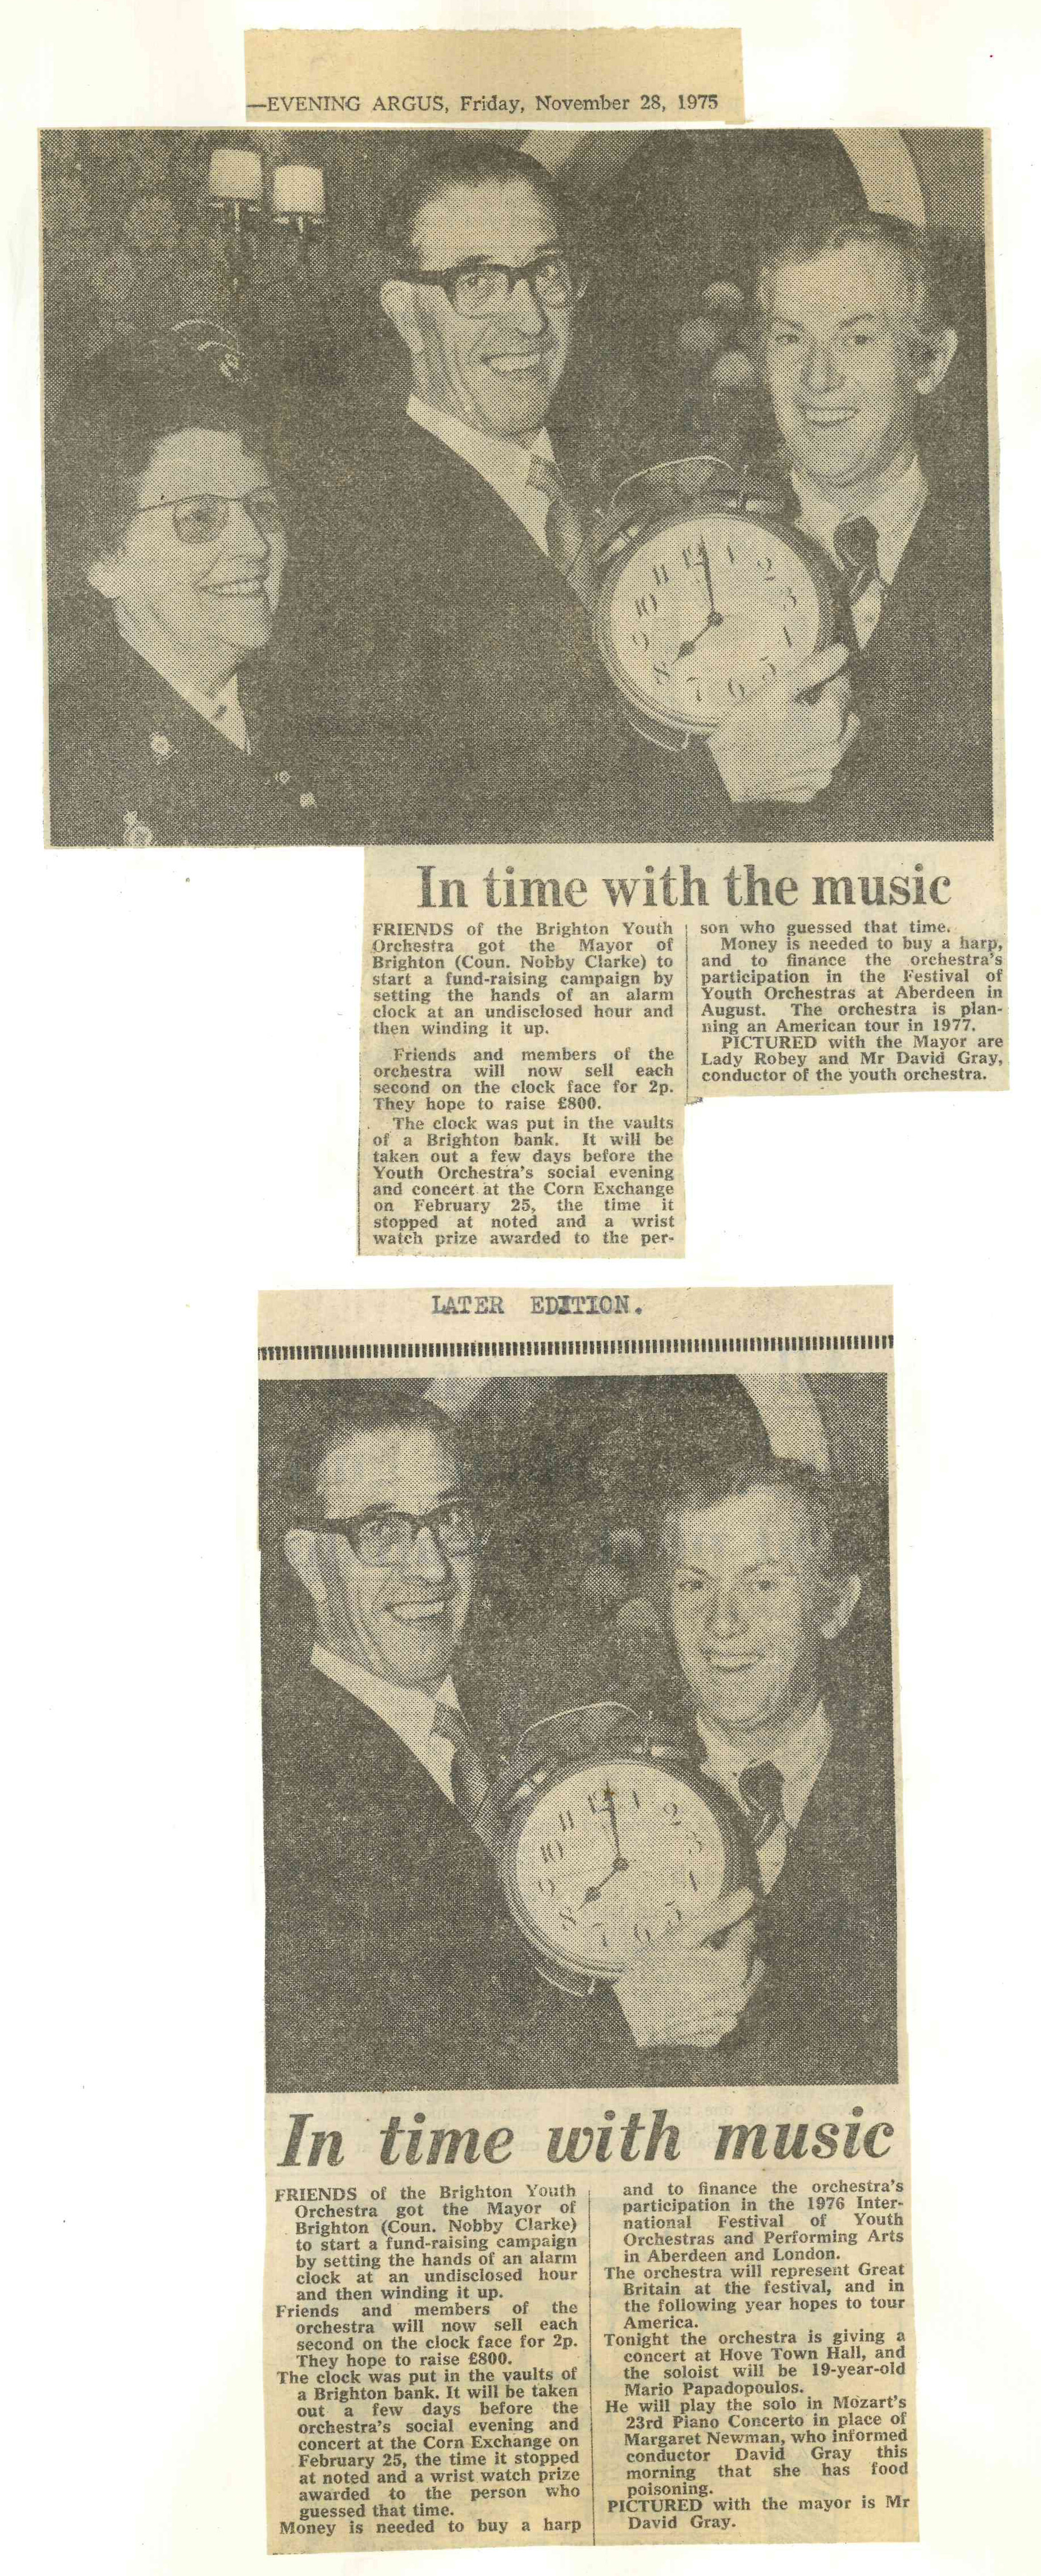 00021-Evening Argus- Alarm clock, 28th November 1975.jpg